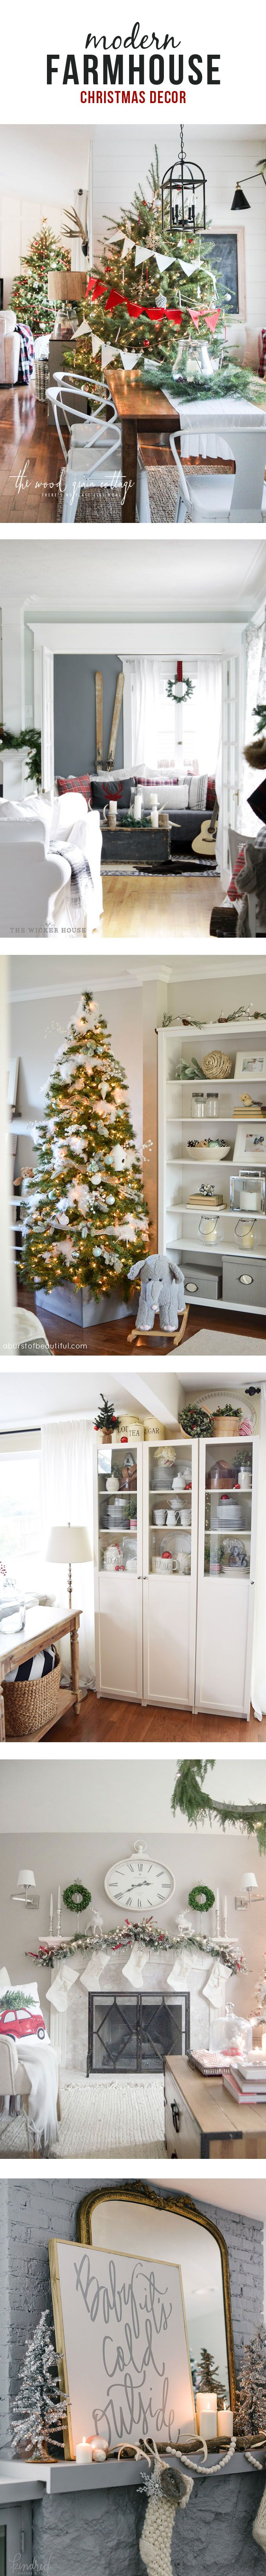 Modern farmhouse Christmas decor. Holiday home tours. Swoon worthy home decor. Rustic chic.